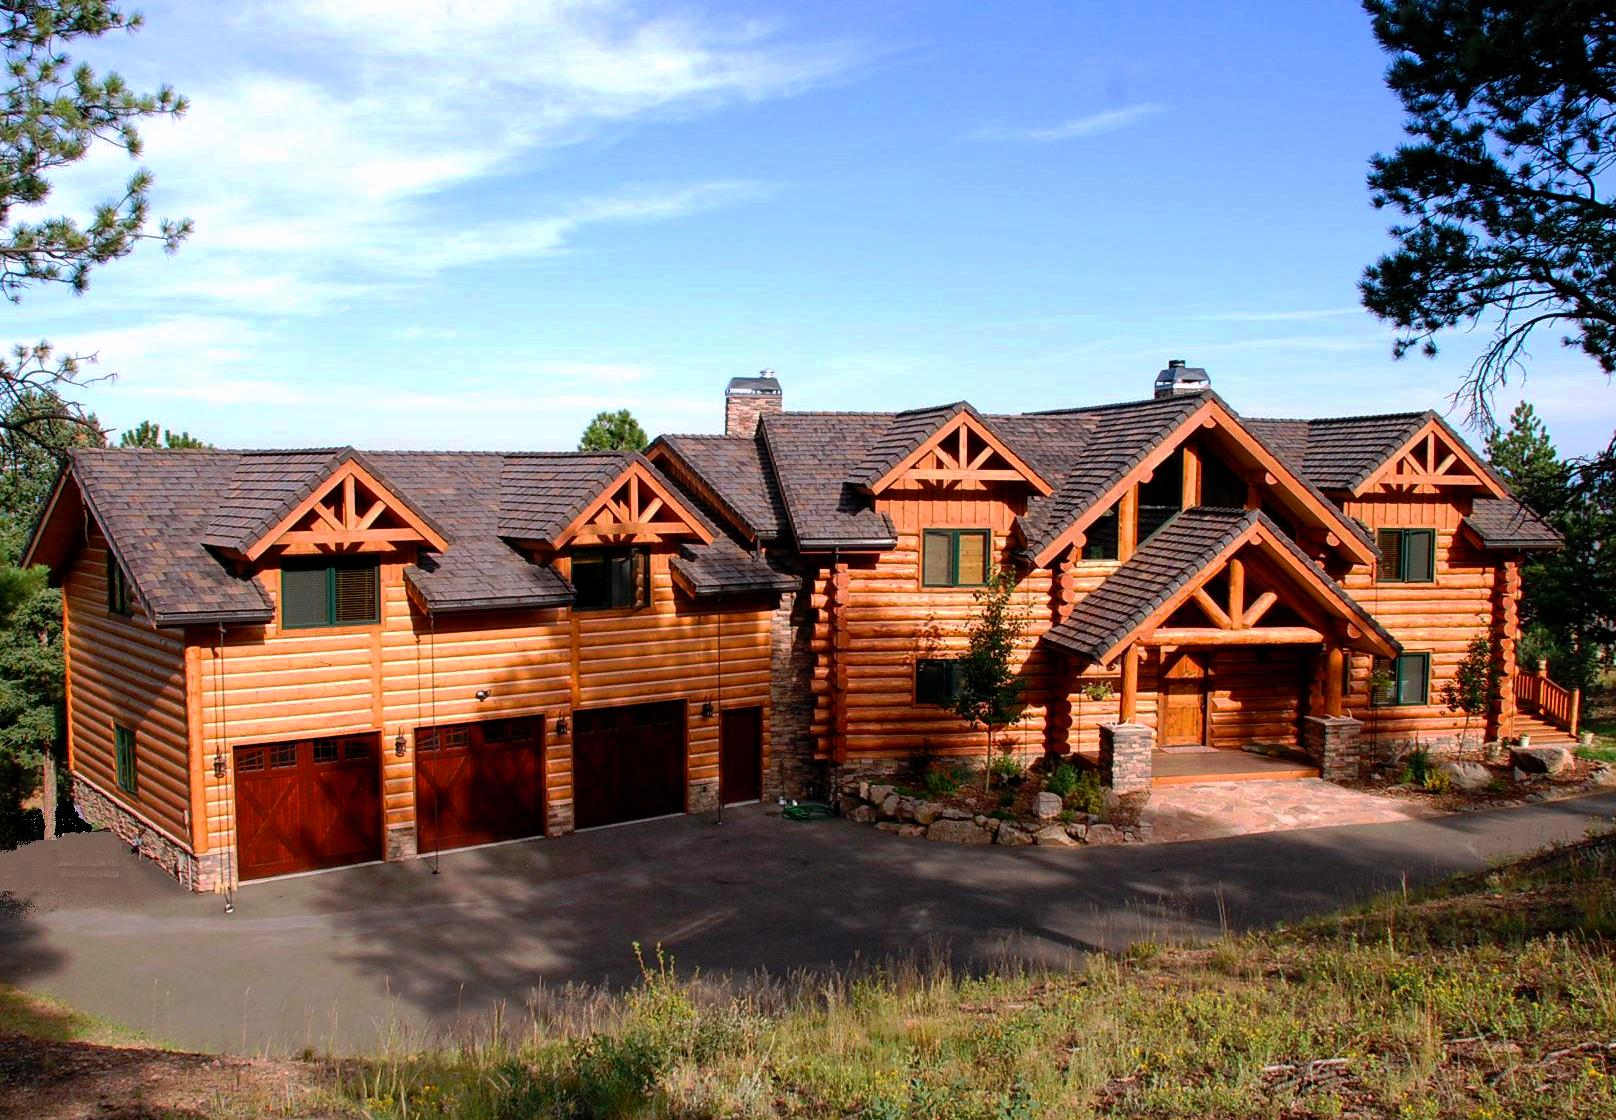 Exterior pictures custom handcrafted milled log homes Country log home